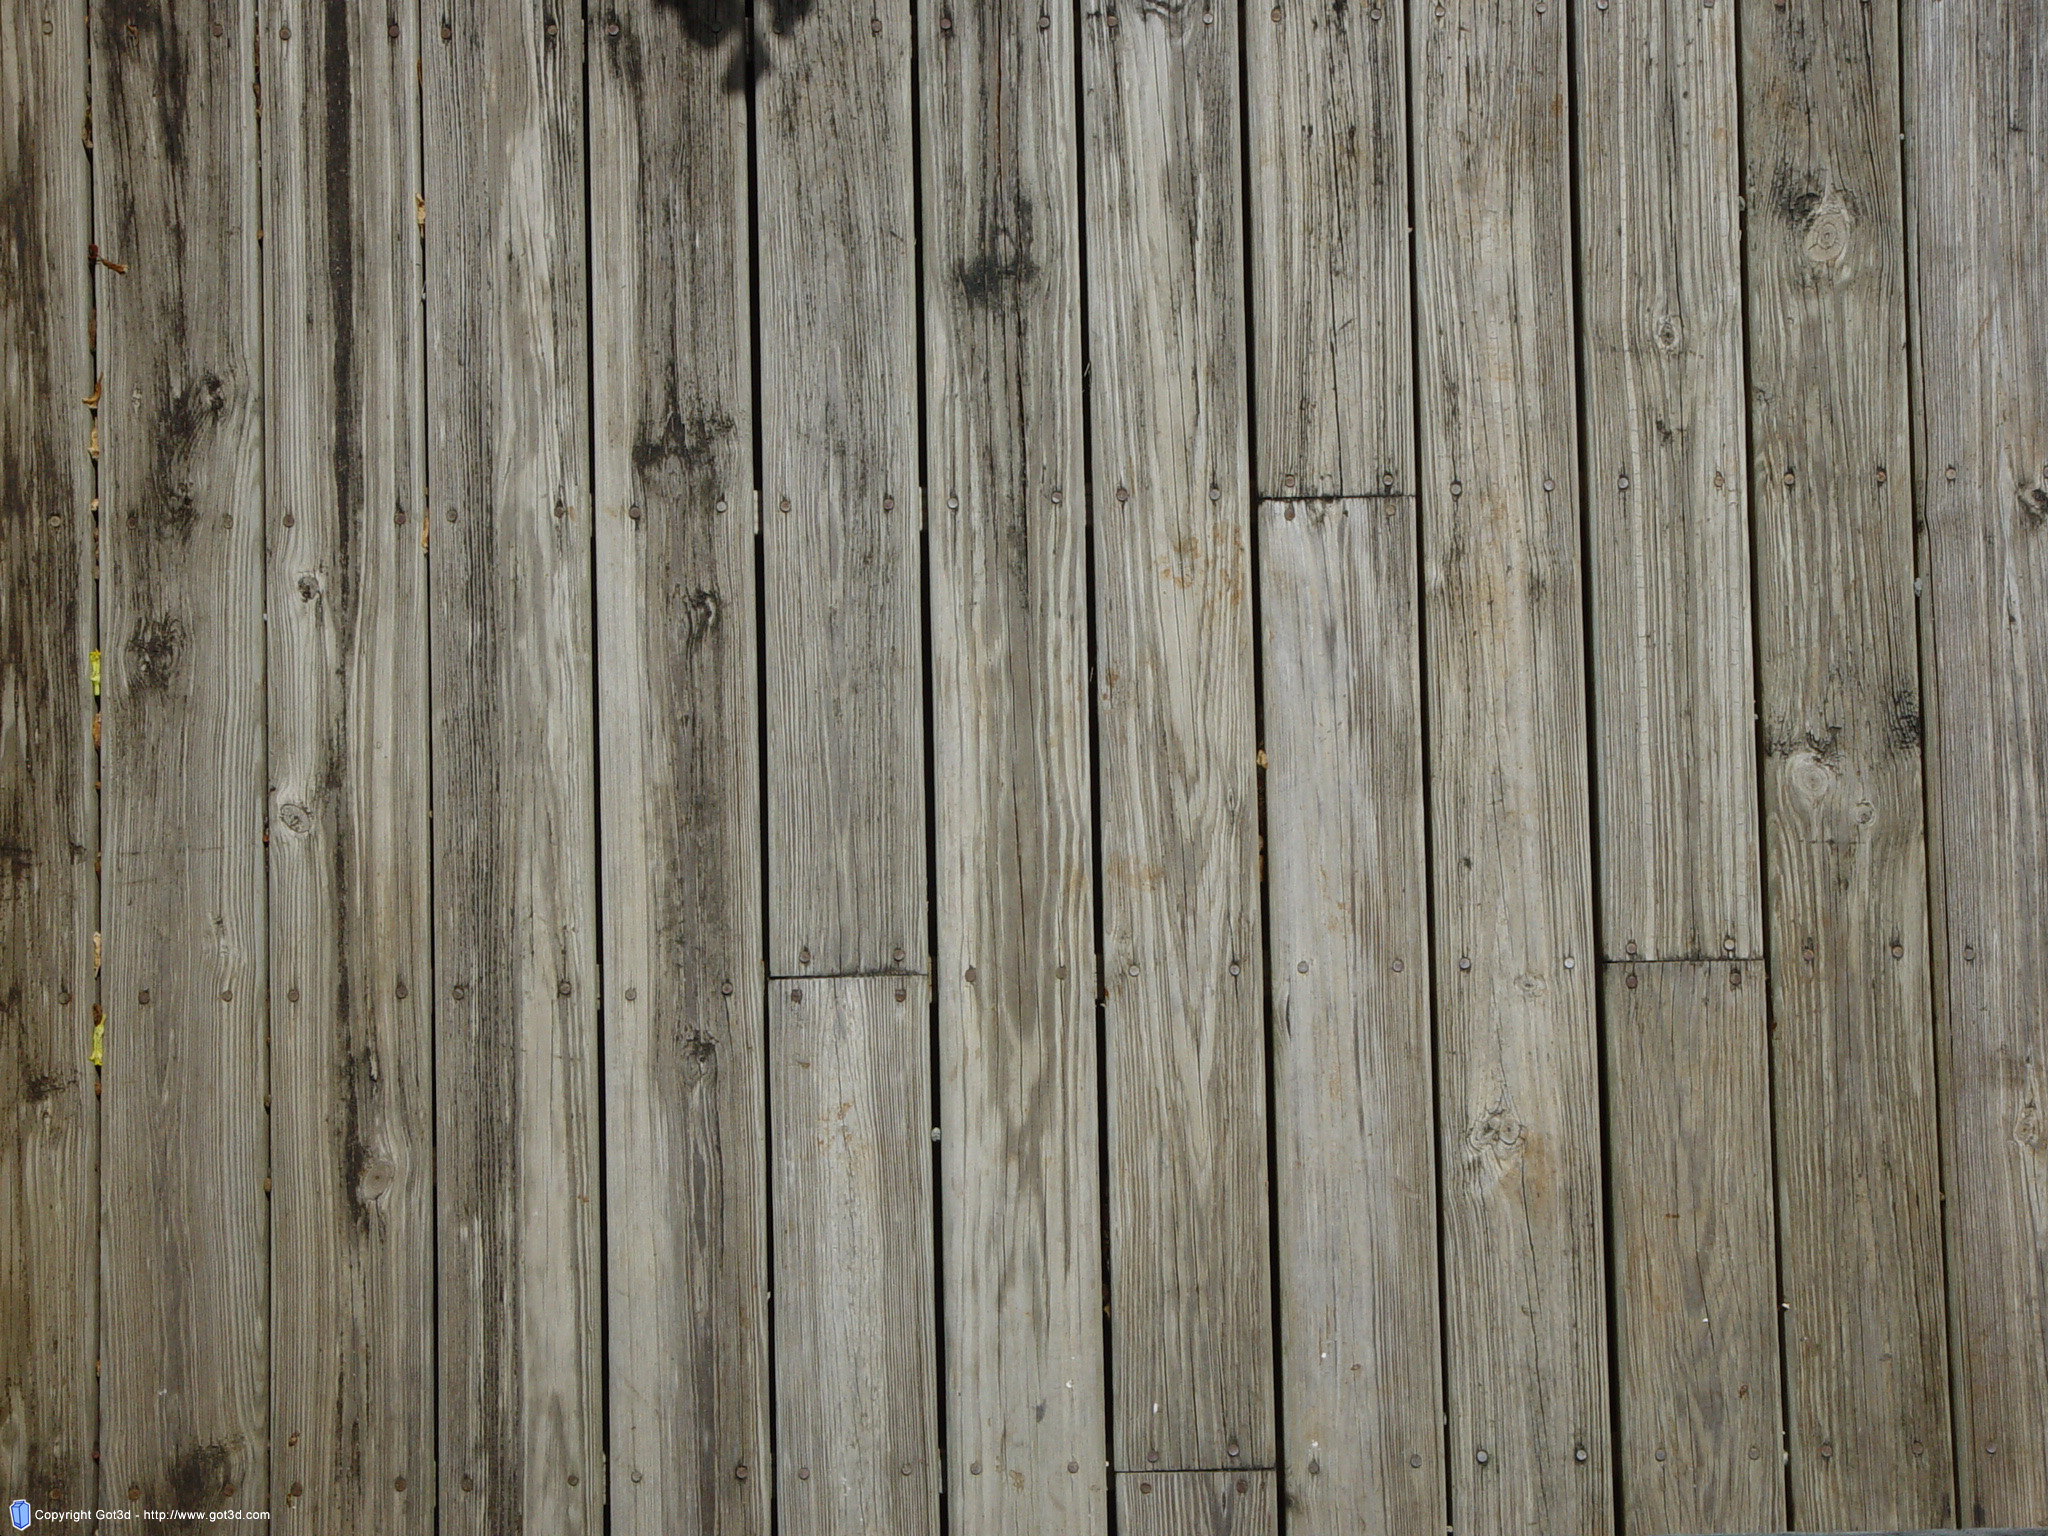 Wooden Textures for Designers (17)